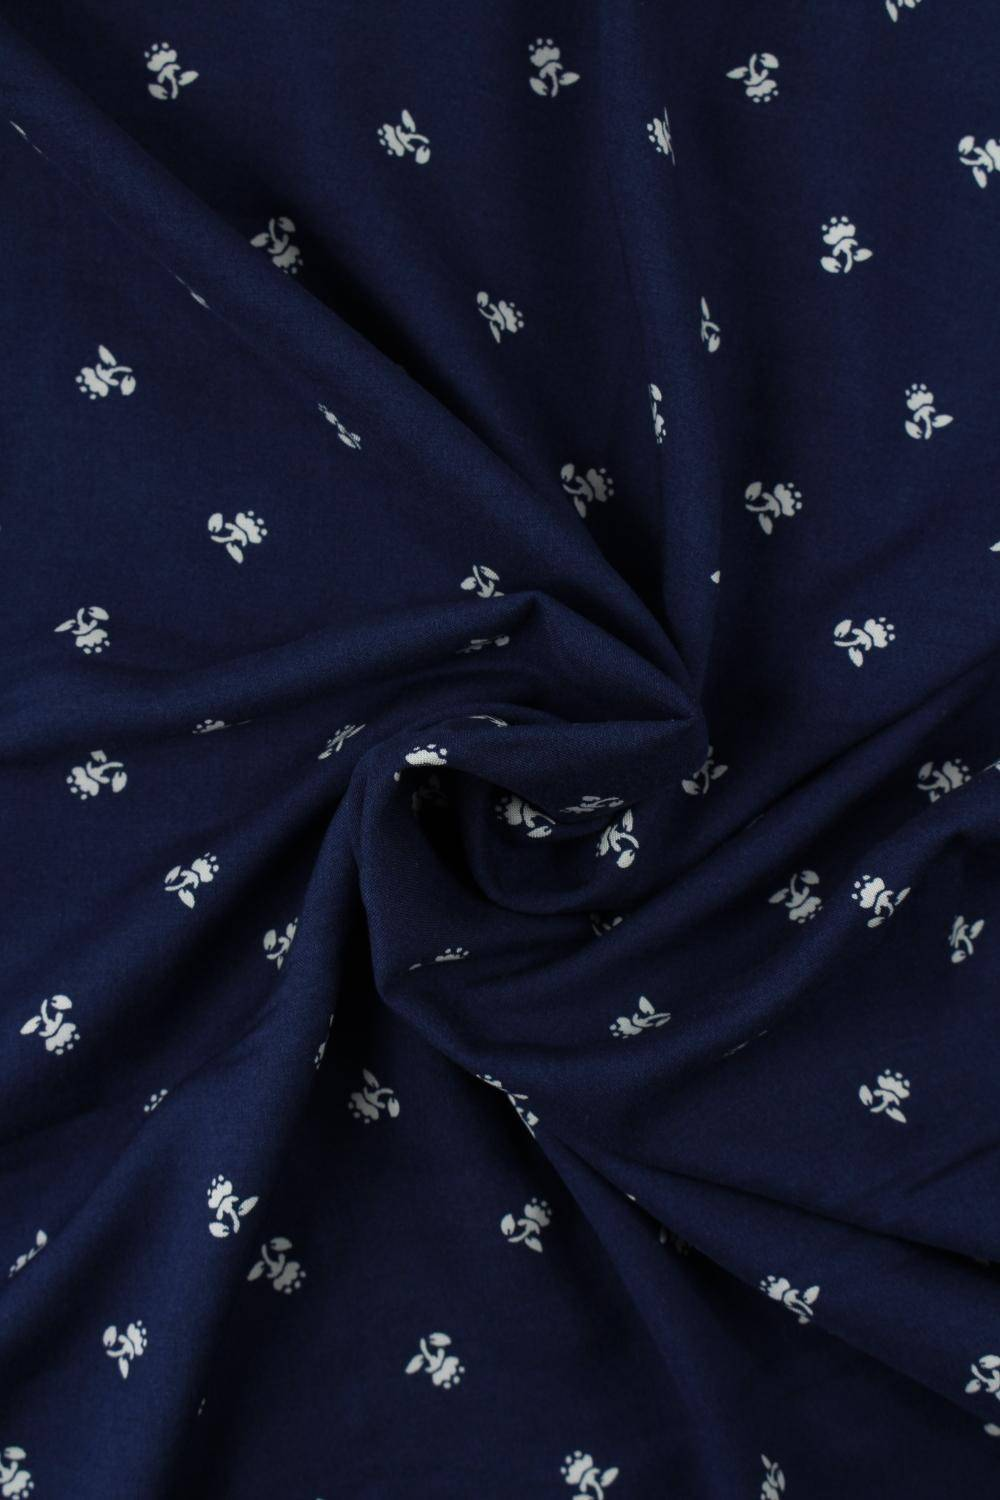 Fabric - Viscose - Navy Blue With White Flowers - 2 rm (Pre-cut)